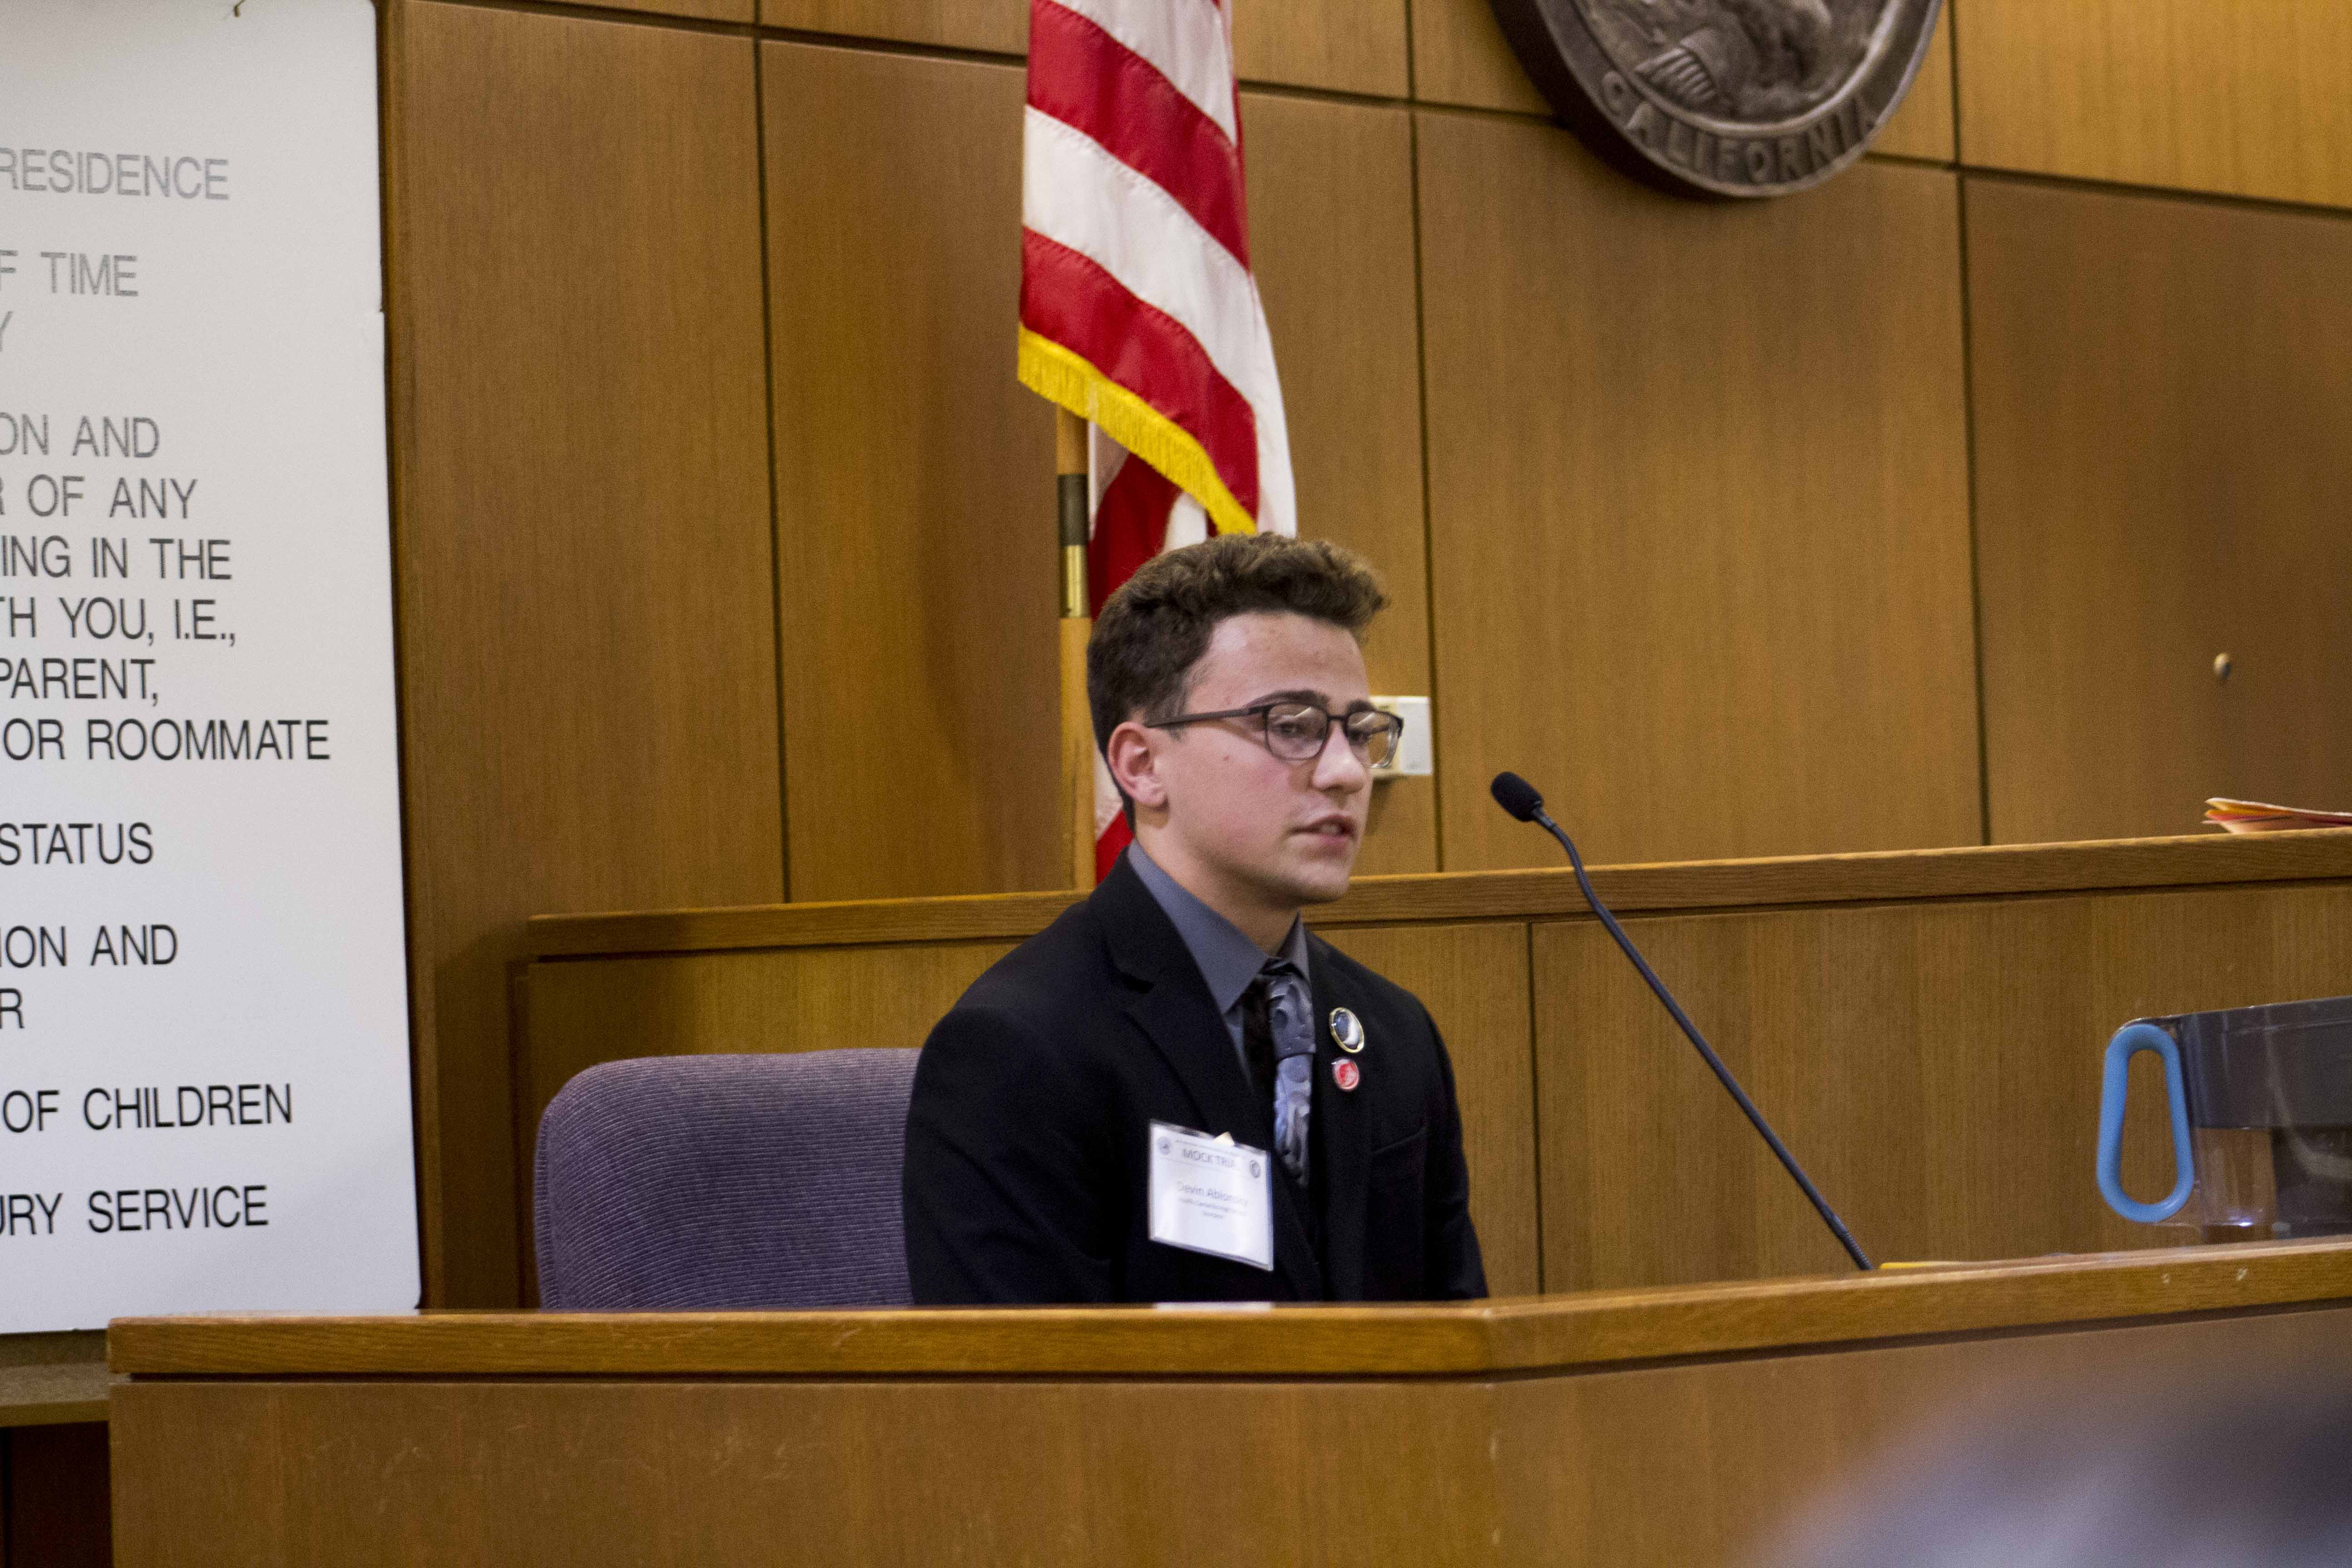 Devin Ablonsky, senior, playing the role of Officer Hayden West on the Mock Trial's A Team.